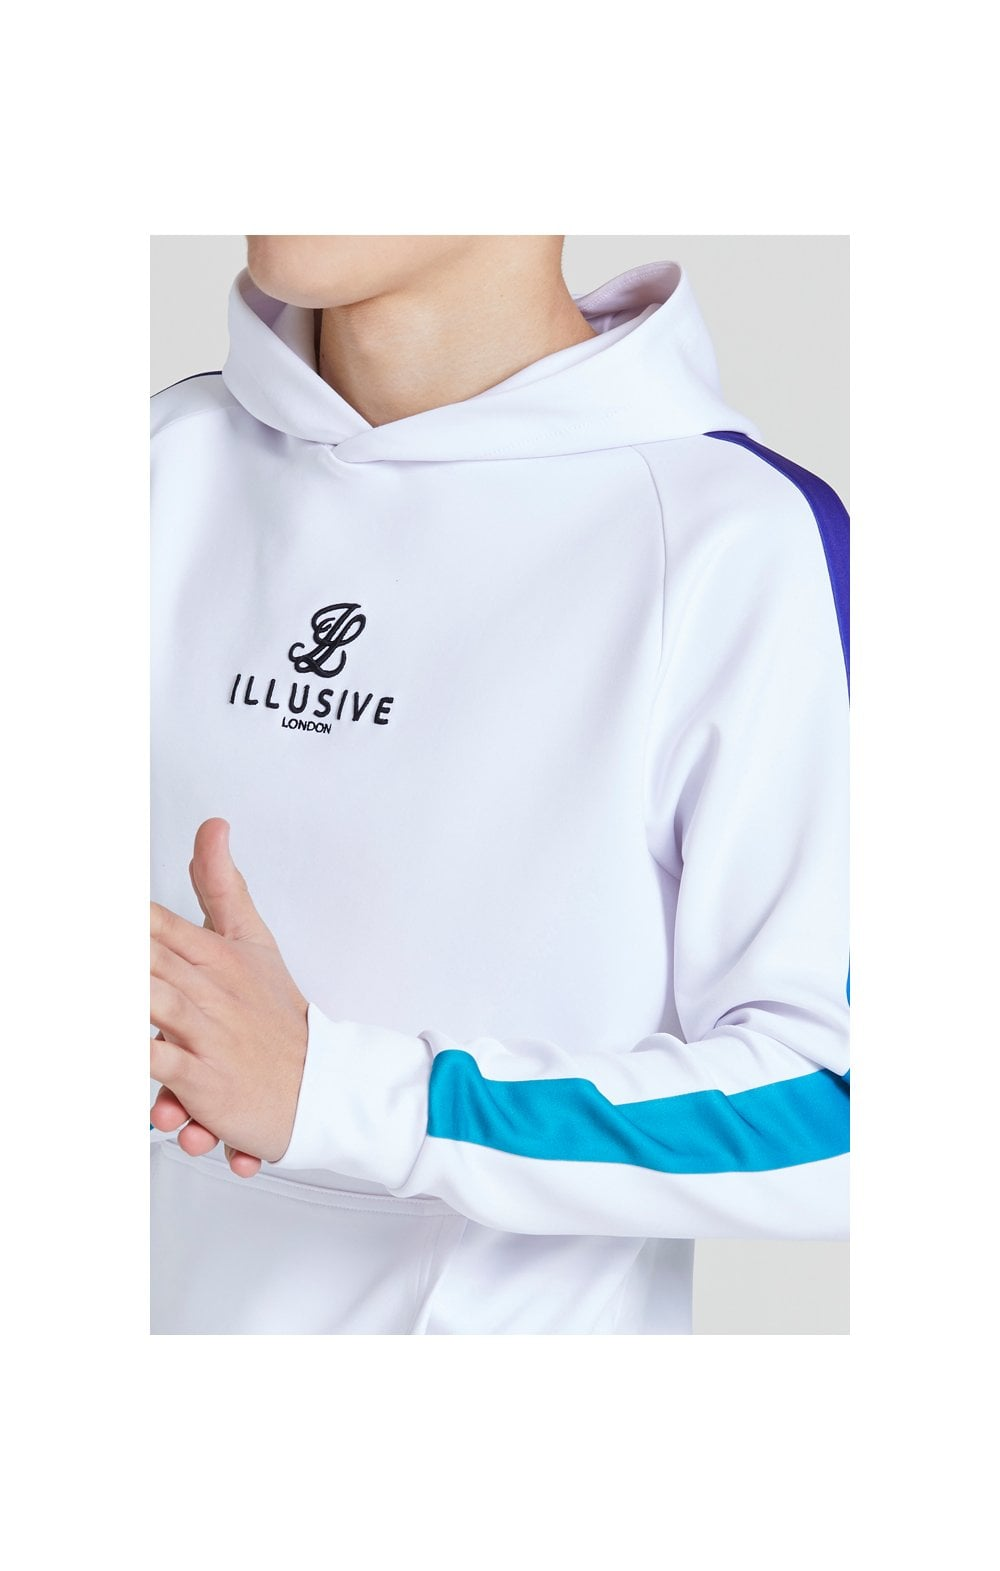 Illusive London Fade Panel Overhead Hoodie - White , Purple & Teal Green (1)